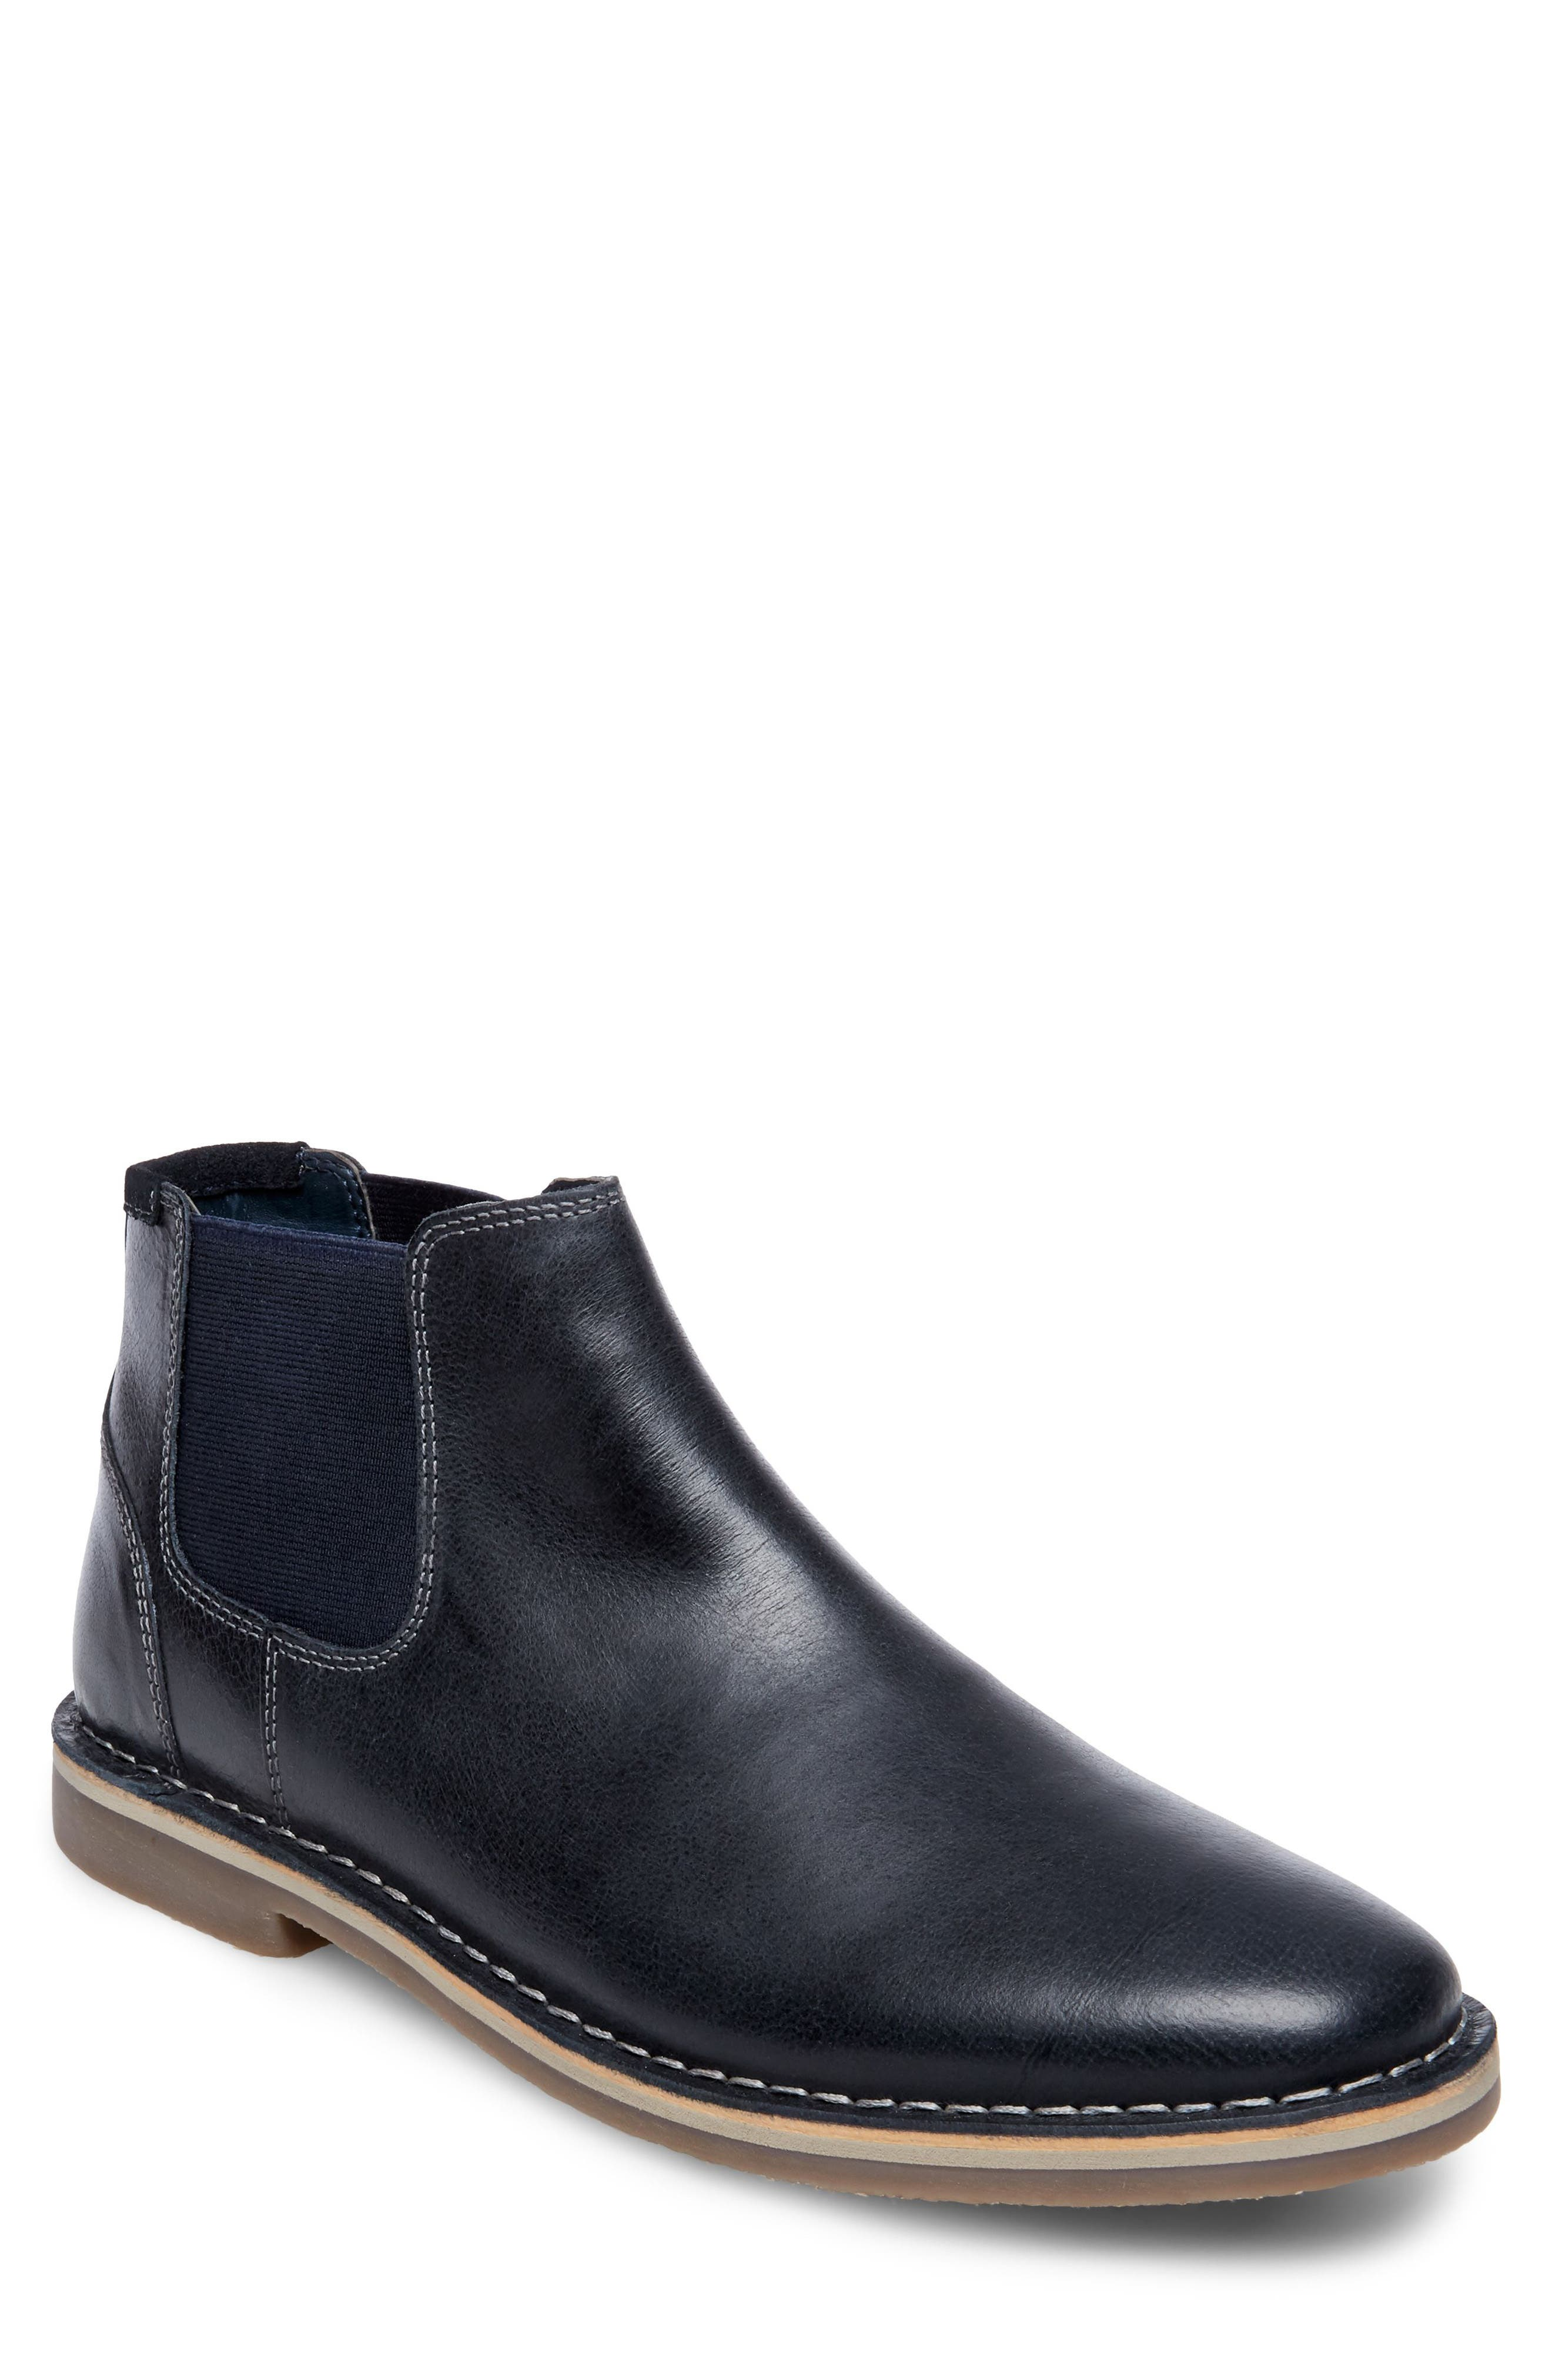 Horus Mid Top Chelsea Boot,                             Main thumbnail 1, color,                             Navy Leather